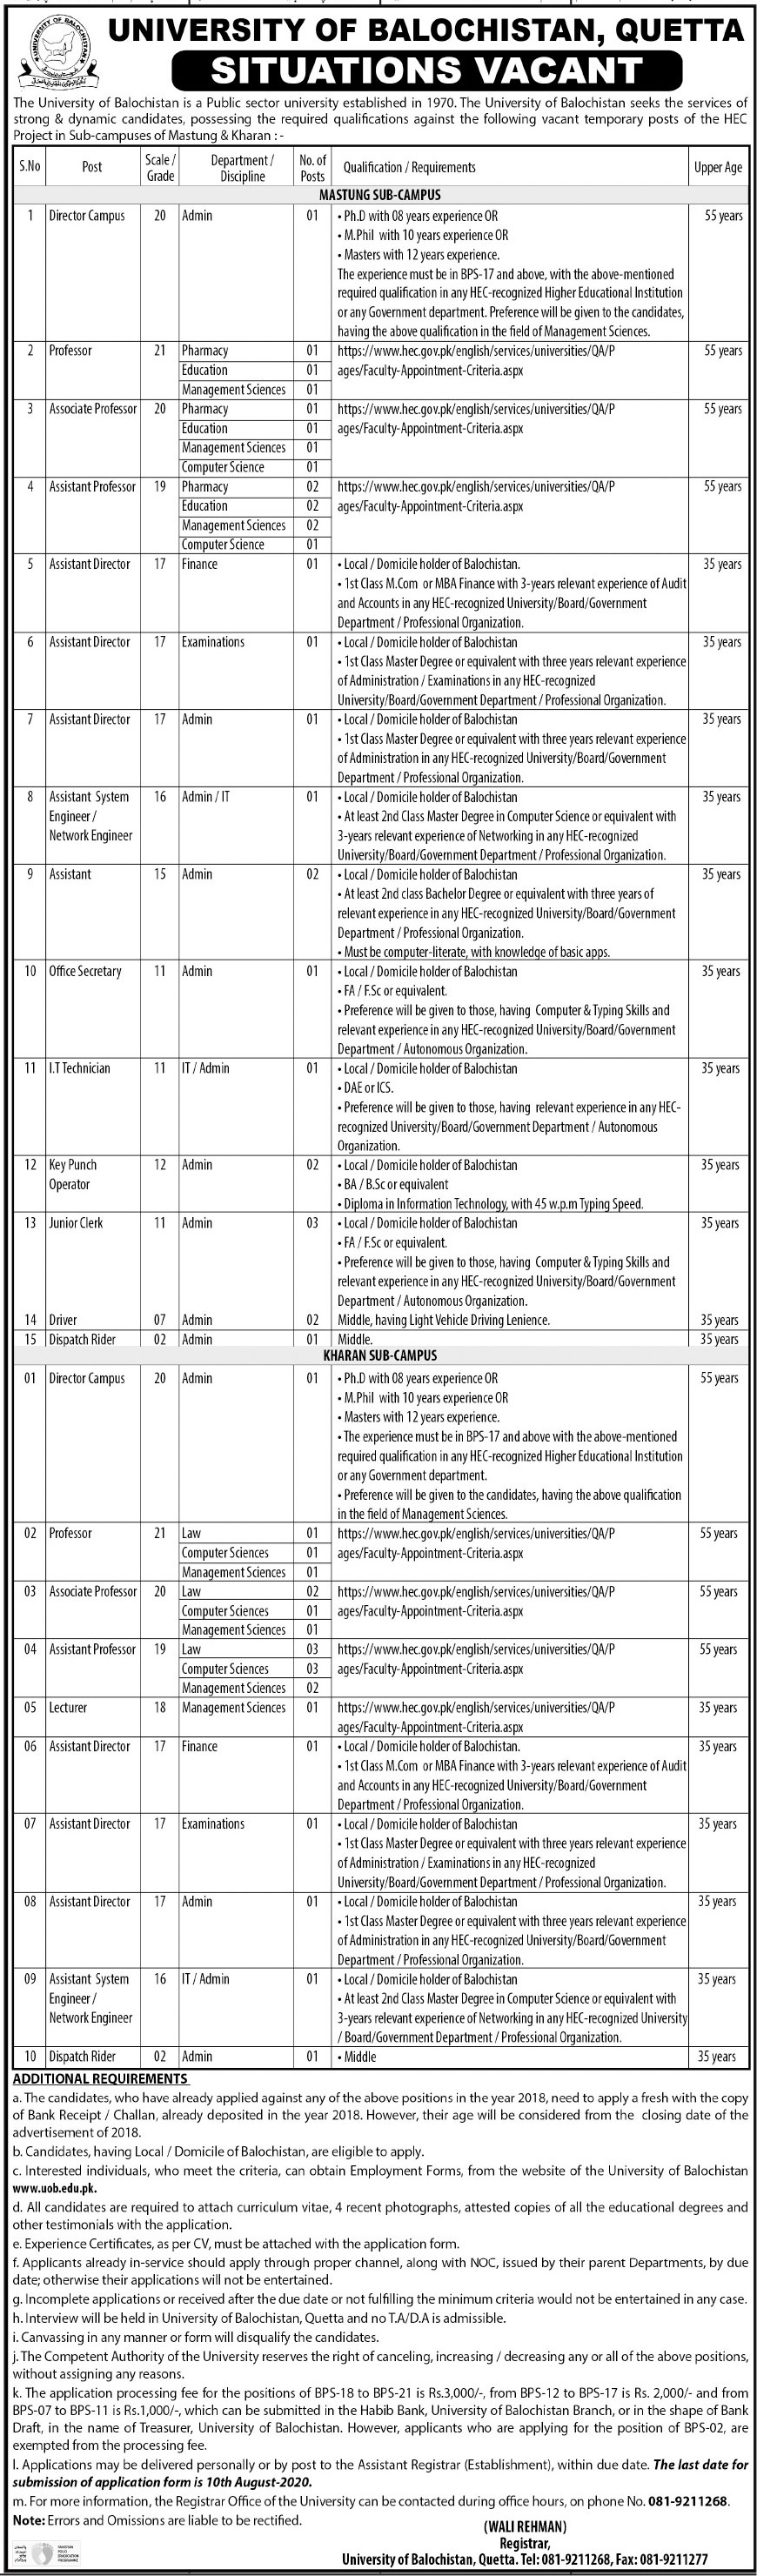 University Of Balochistan Quetta Jobs For Director Campus, Professor, Associate Professor, Assistant Professor, Assistant Director, Office Secretary, It Technician advertisemet in newspaper on June 28,2020